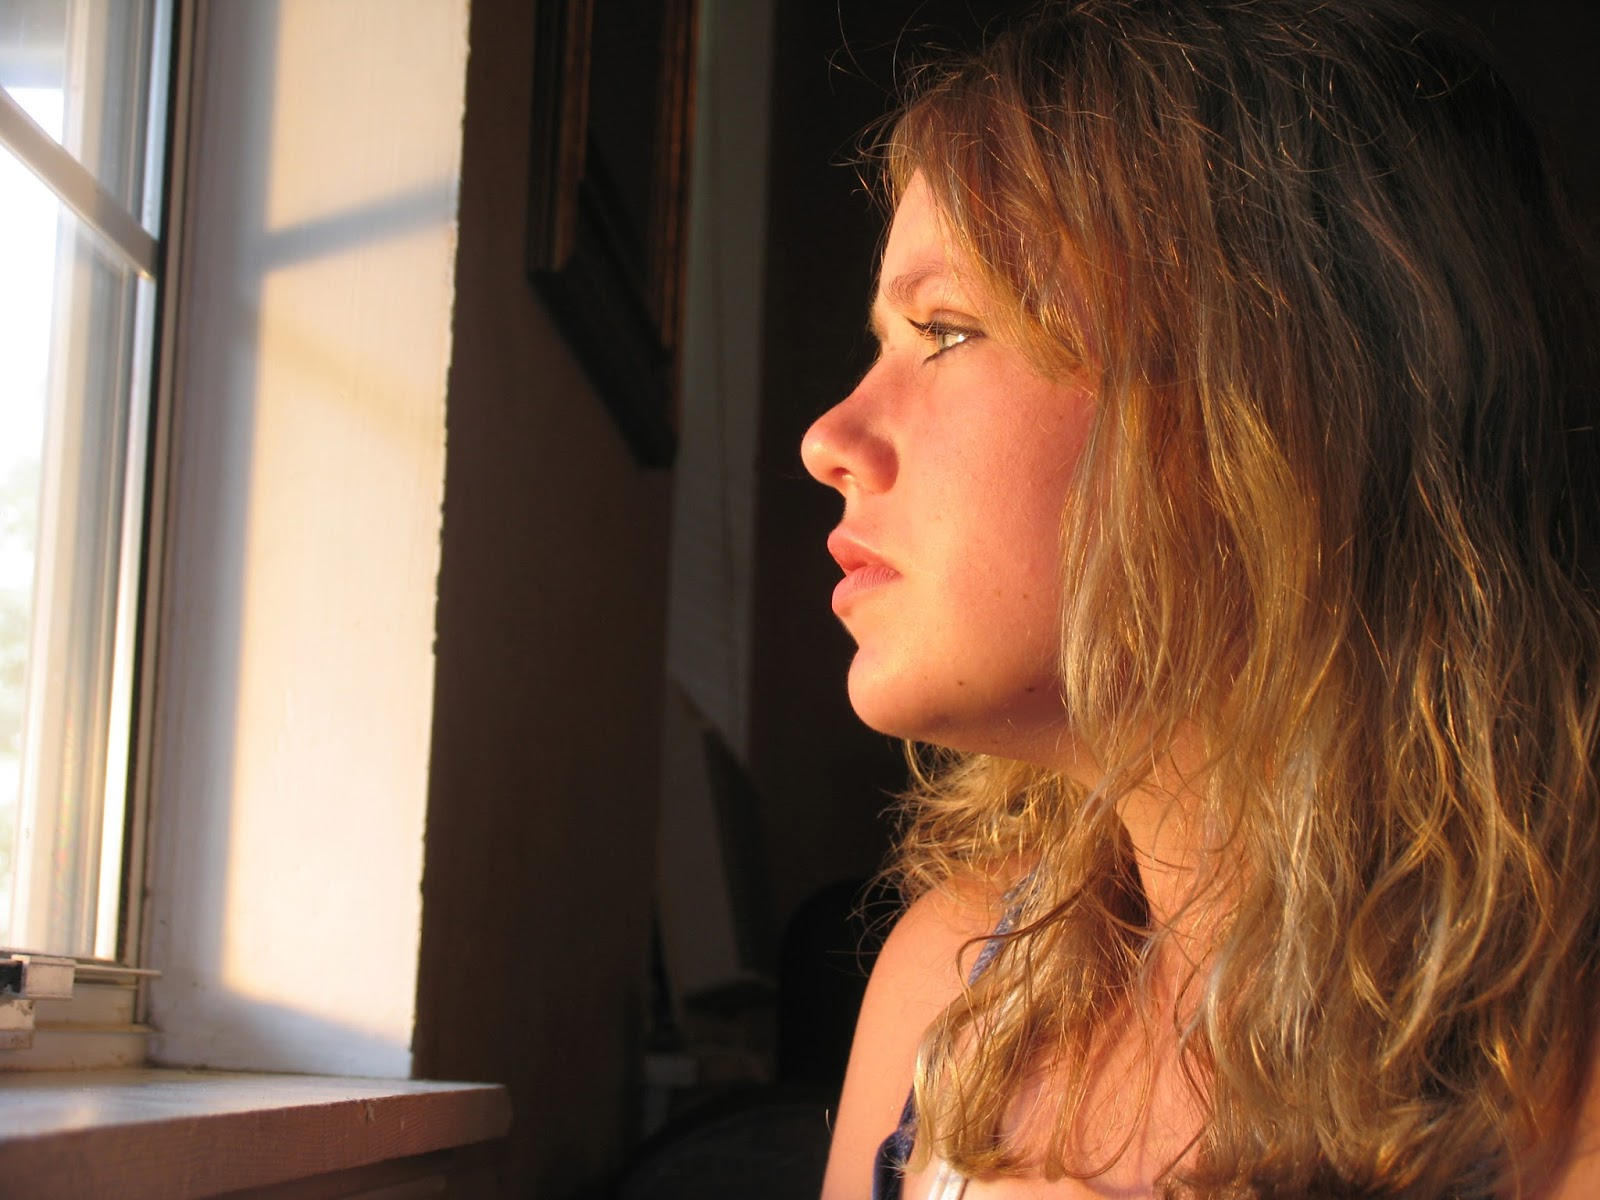 Chat for Adults with HFA and Aspergers: How to Avoid Meltdowns